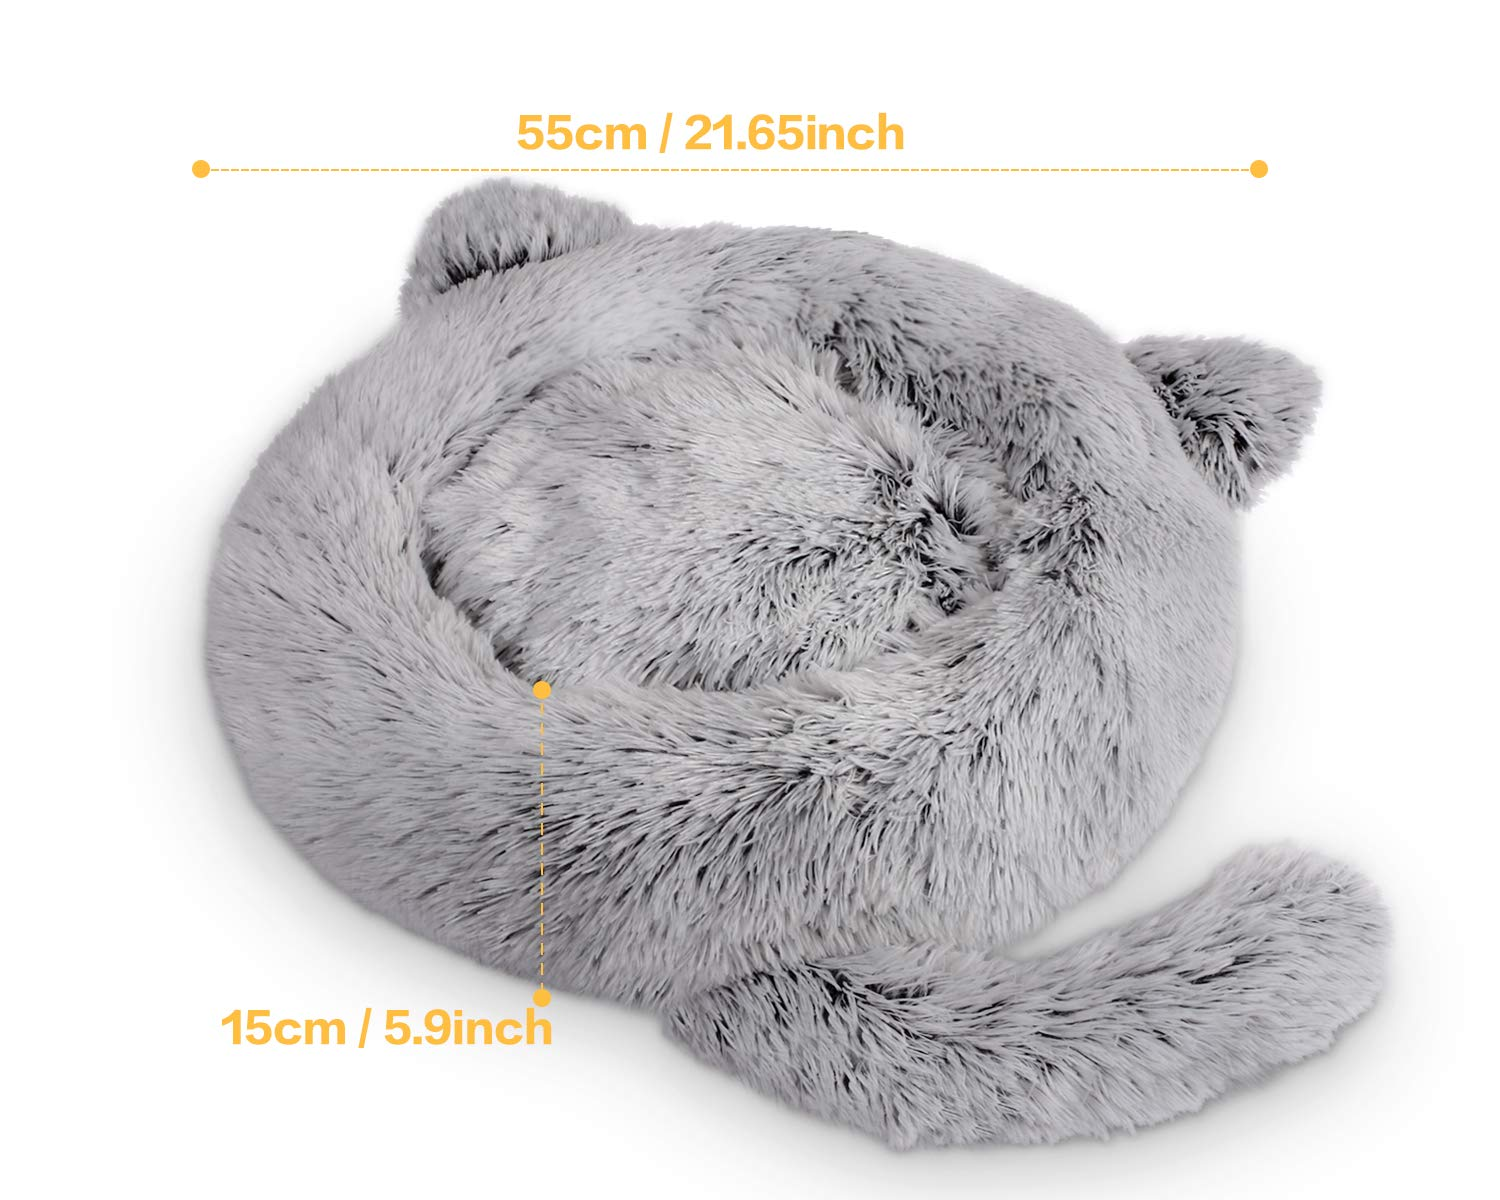 Pecute Cat Bed Small Dog Plush Donut Beds, Large Cats Soft Cushion Puppy Cosy Bedding Warm Sofa Non-Slip, Washable Easy to Clean(55cm diameter, Light Grey)